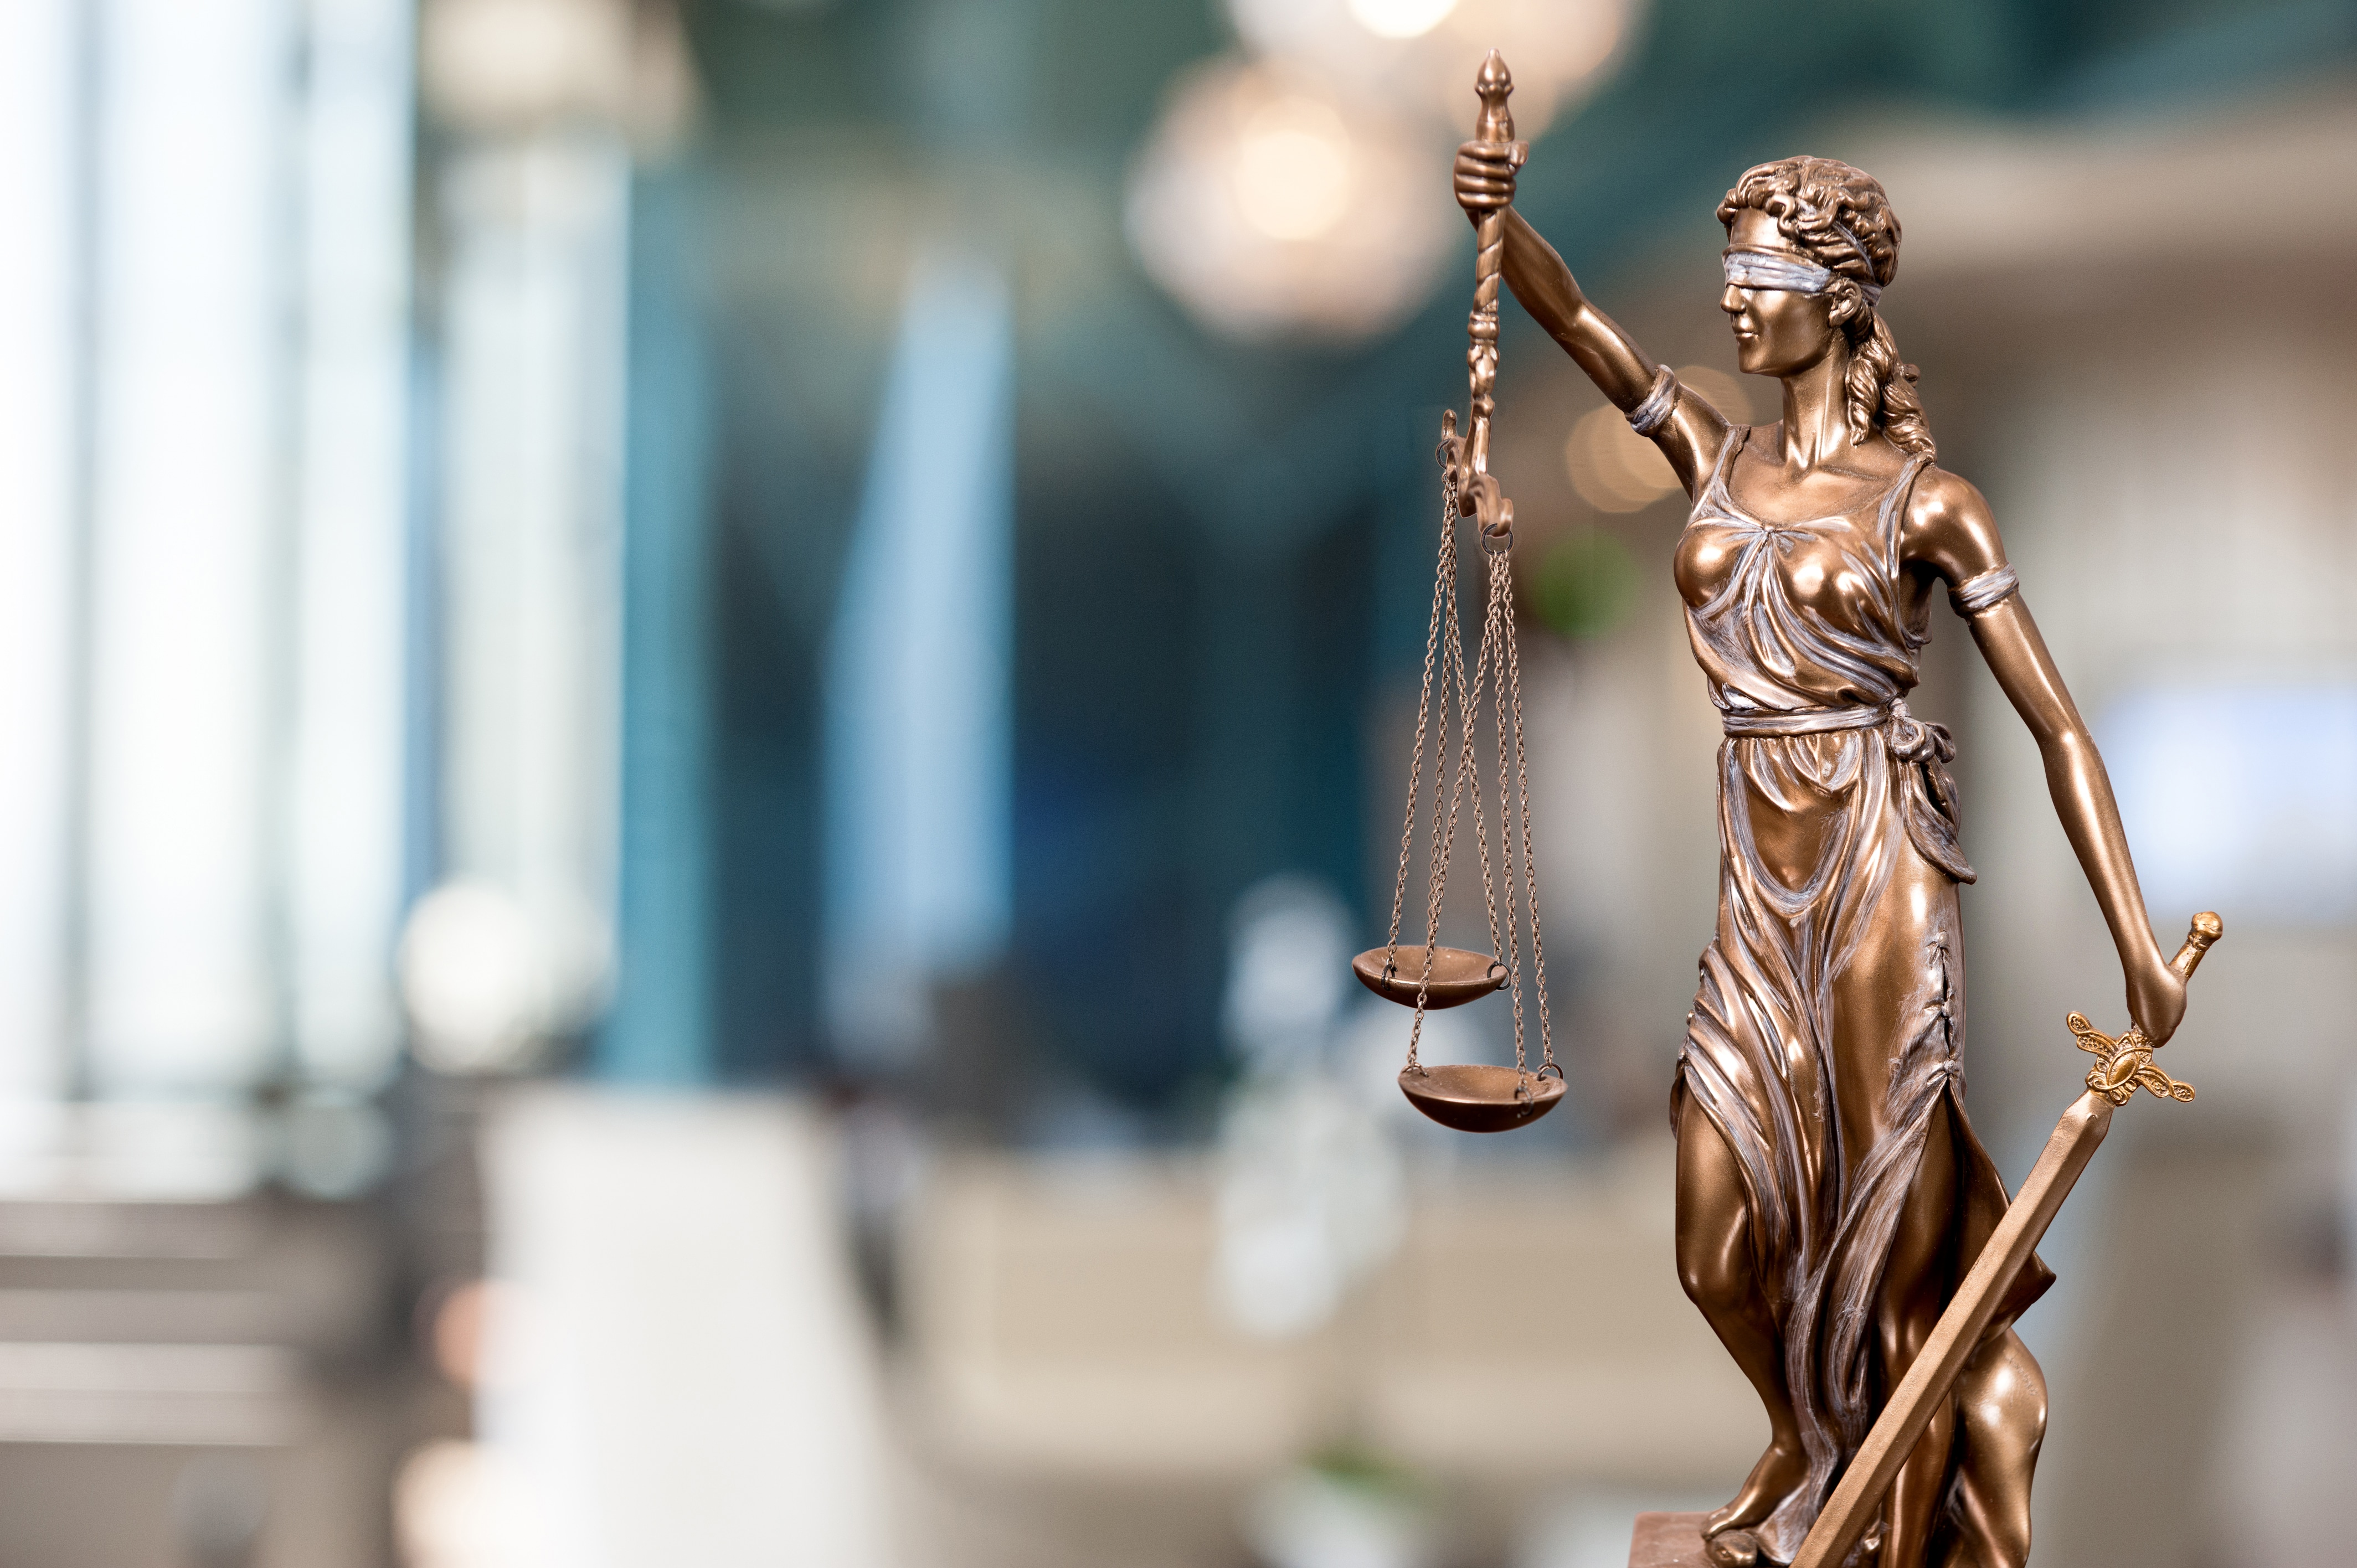 Statuette of lady justice